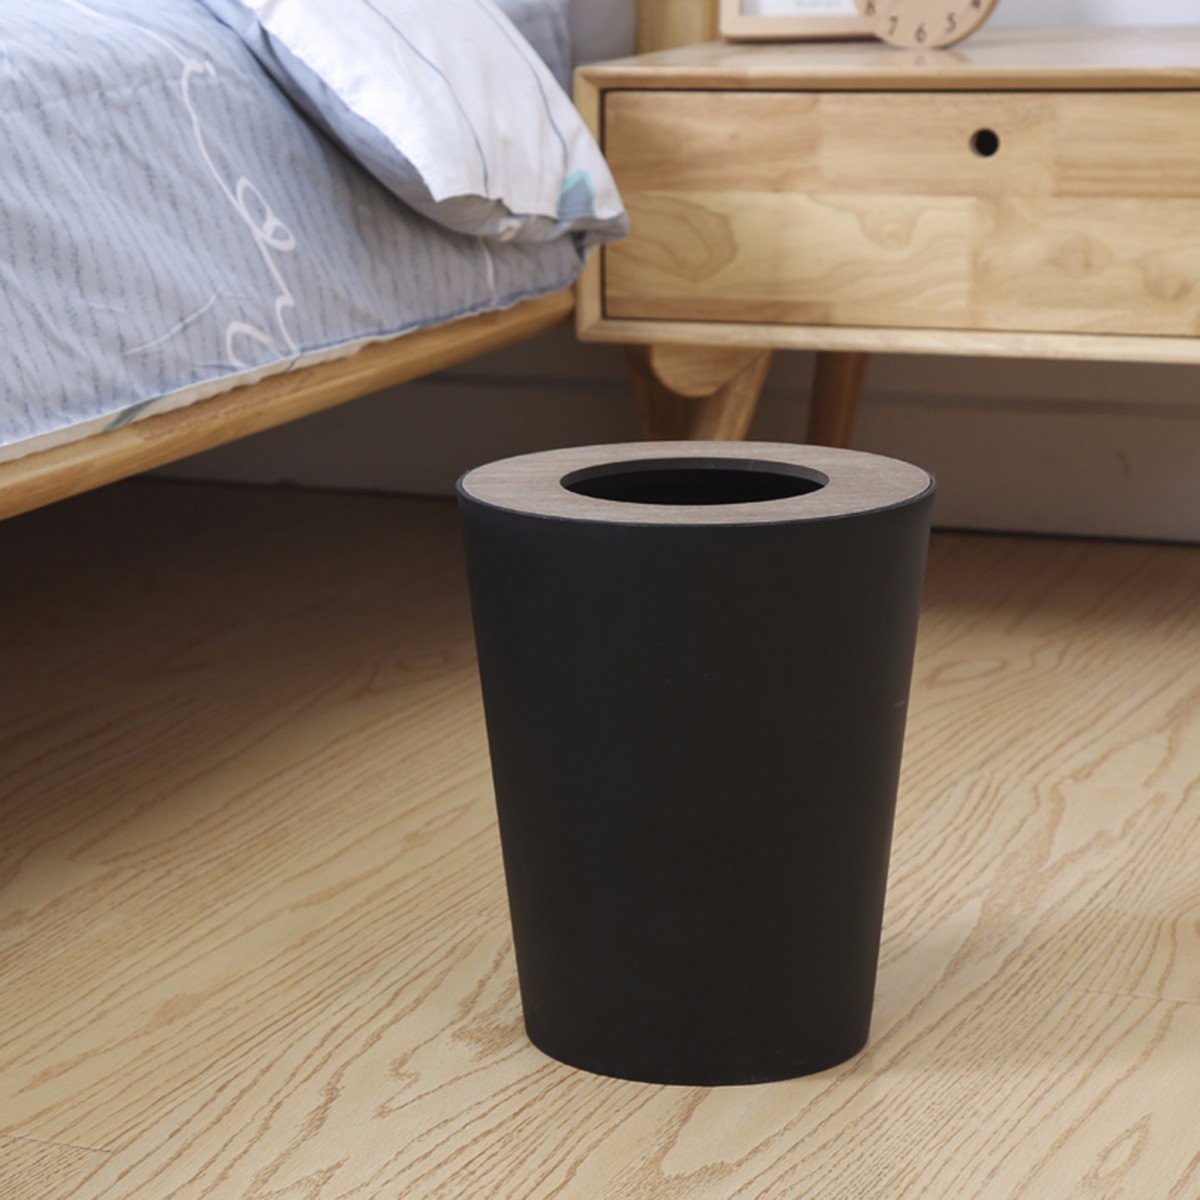 TDLC Creative North European household with cover wood covered the living room Bathroom kitchen with minimalist cover Waste Basket basket, B by TDLC (Image #2)